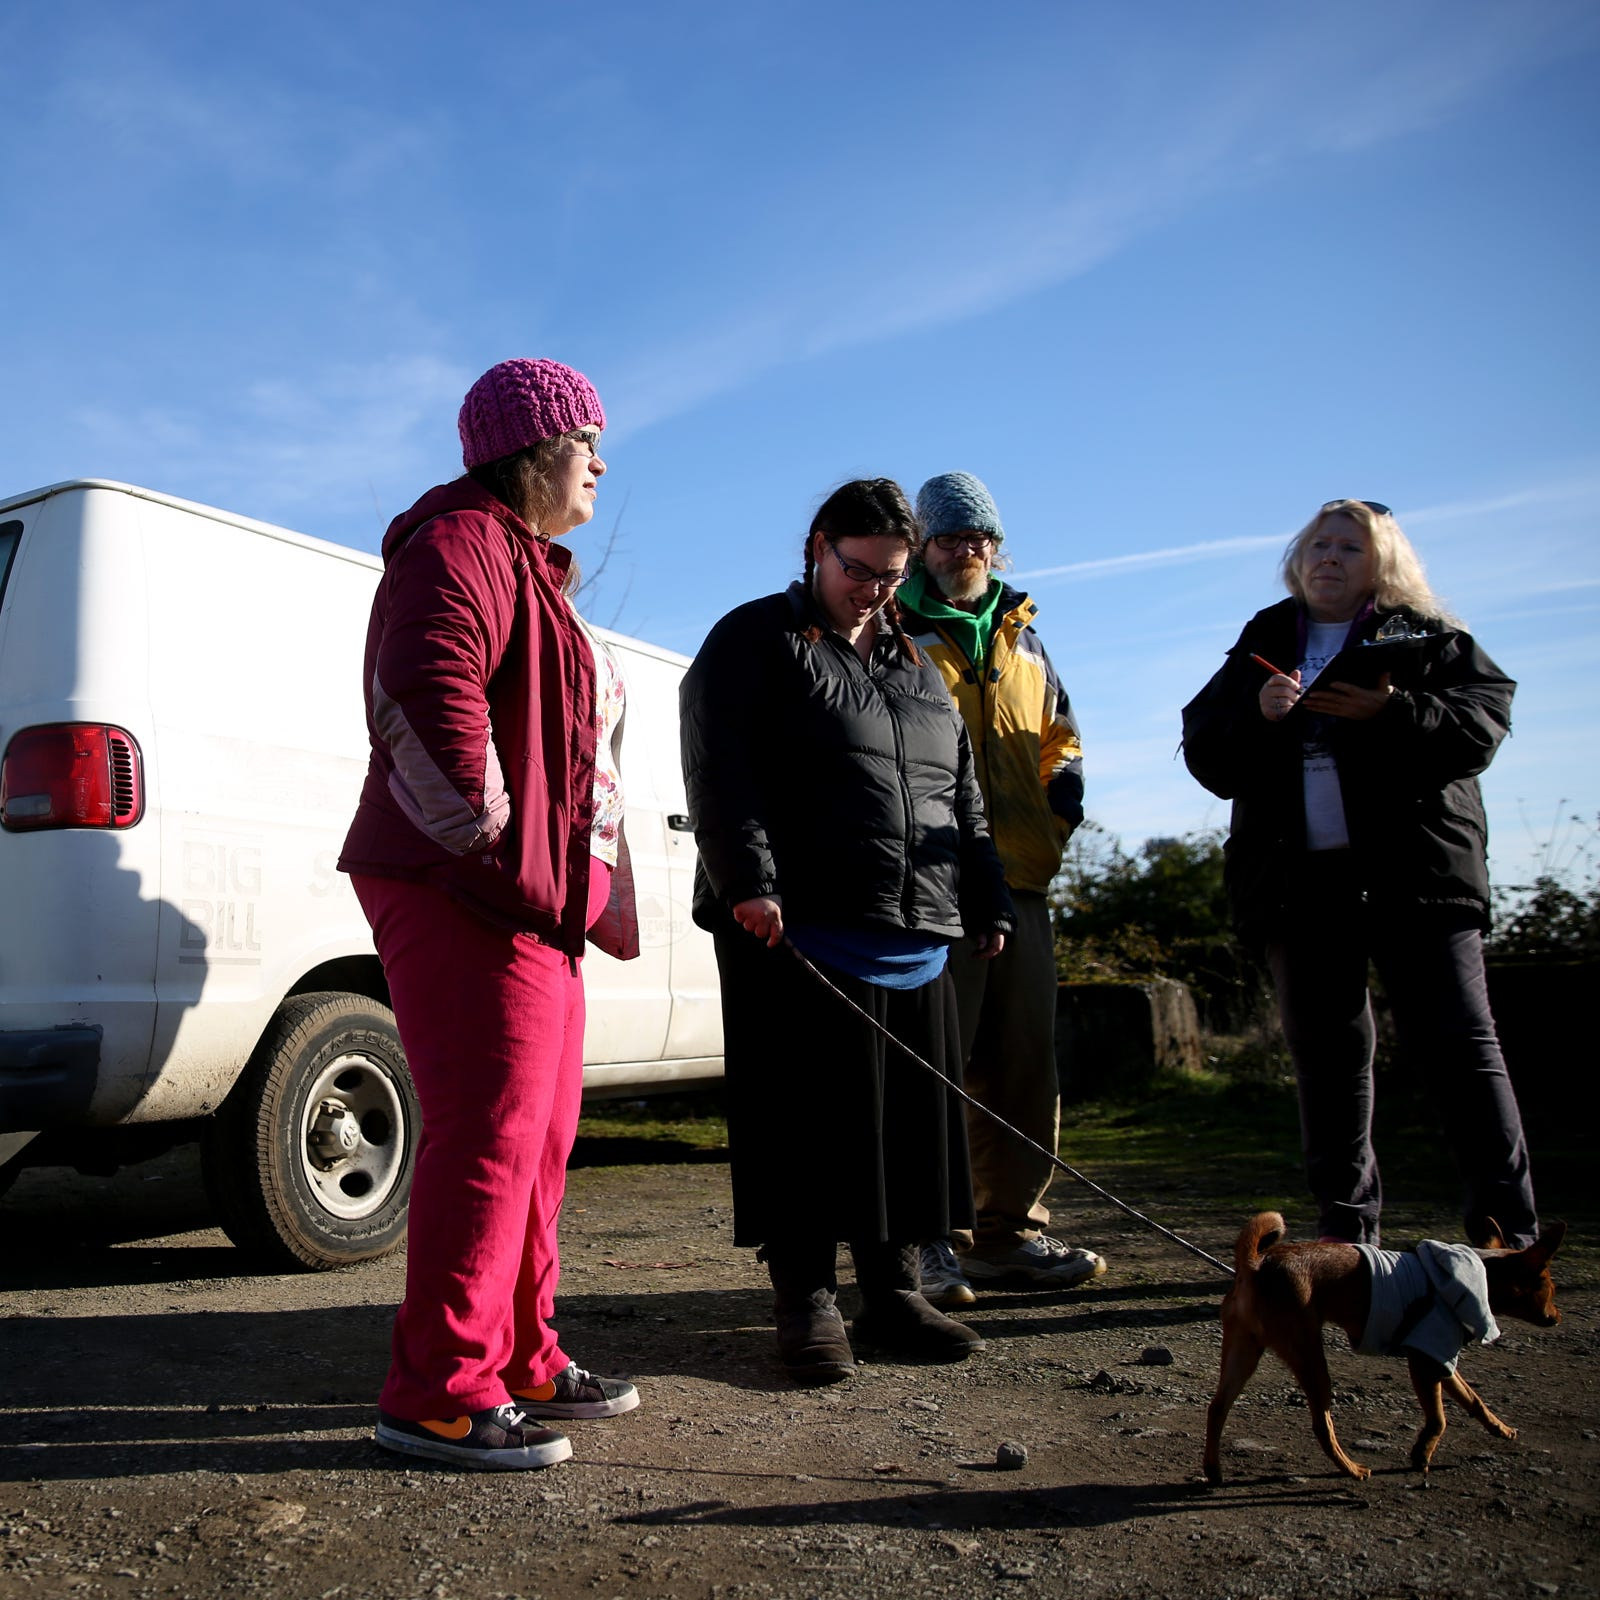 Homeless PIT count shows 20 percent increase in Marion, Polk counties - with big caveat